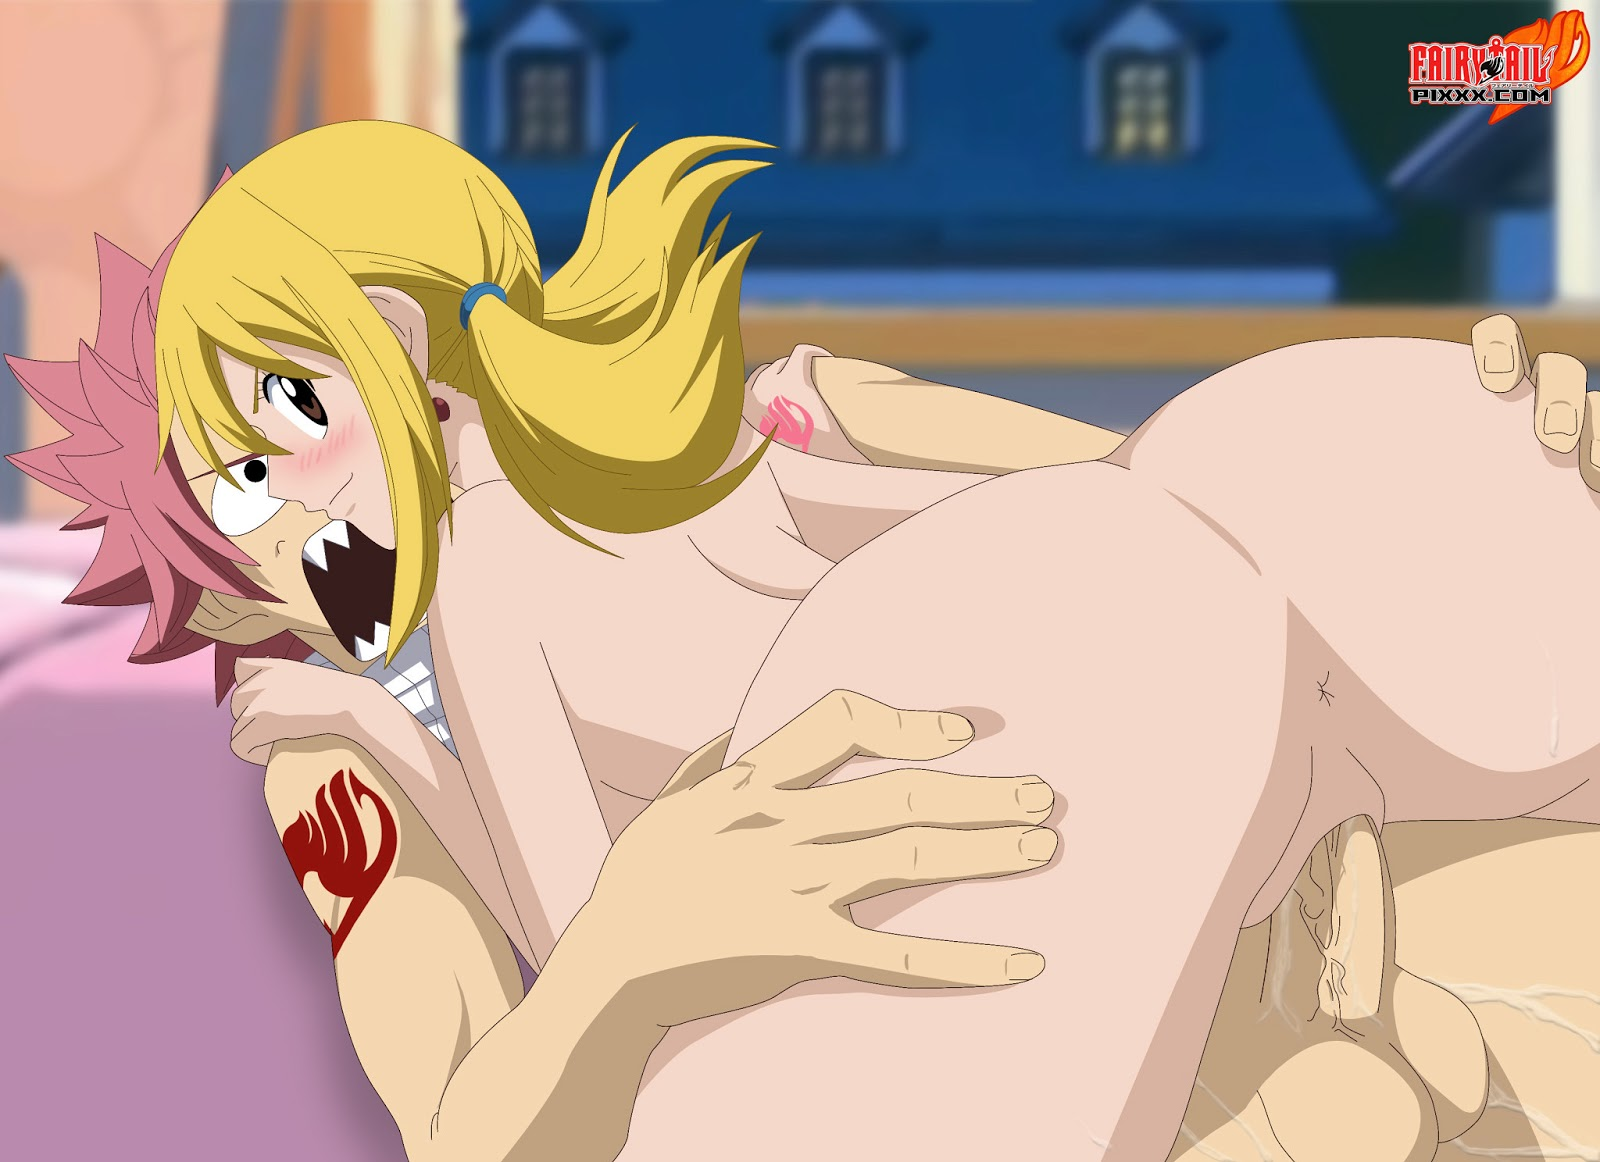 Fairy tail anime sex pic erotic photo